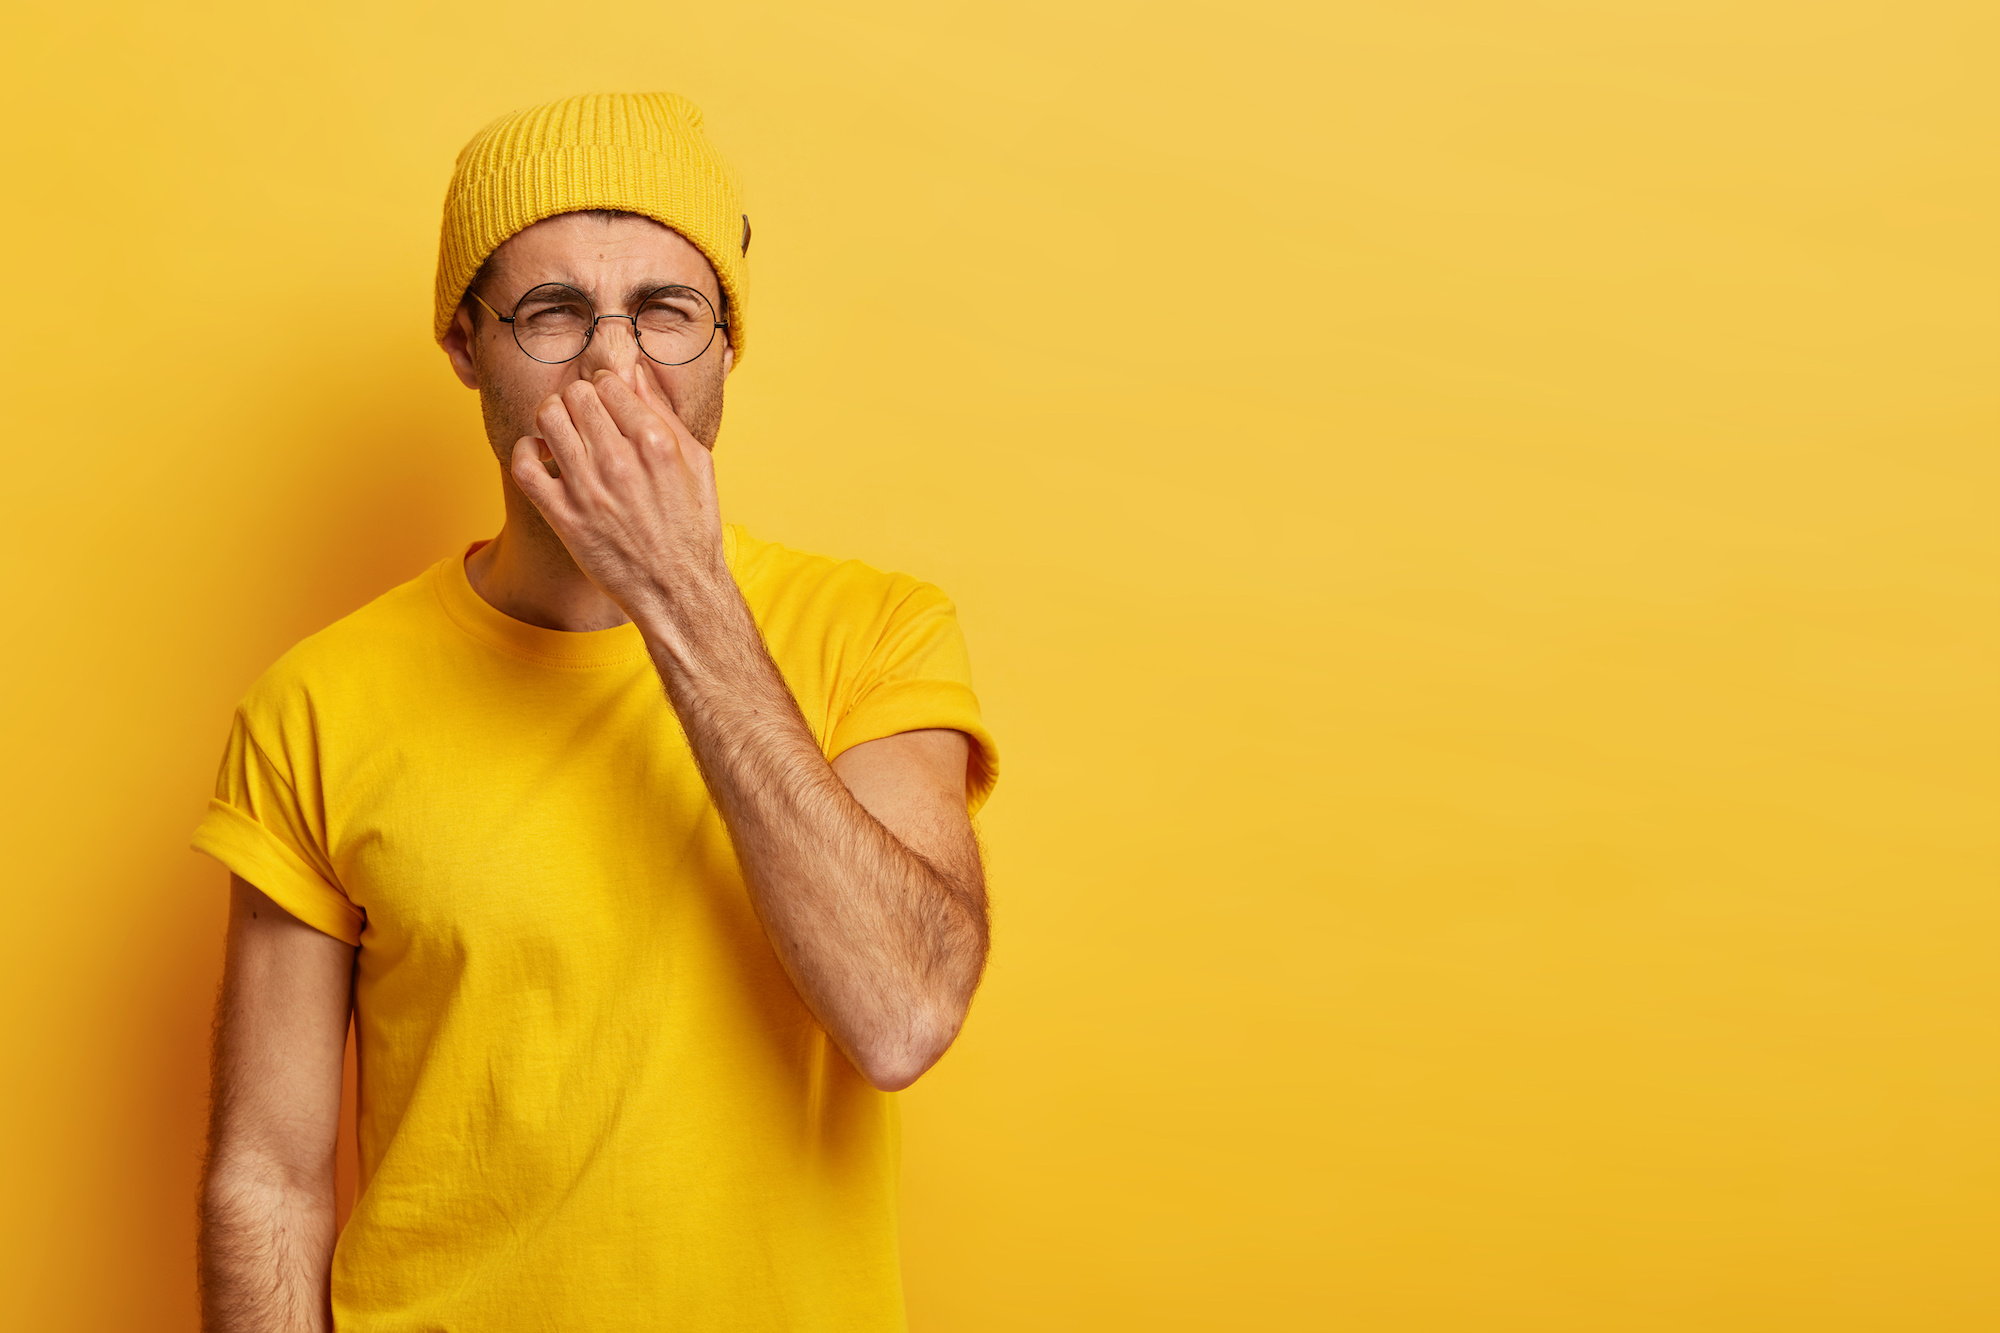 Disgusted young hipster pinches nose with fingers, looks in disgust as smells something stink, wears spectacles, yellow hat, t shirt, stands in stuido with blank copy space. Fie, unpleasant smell